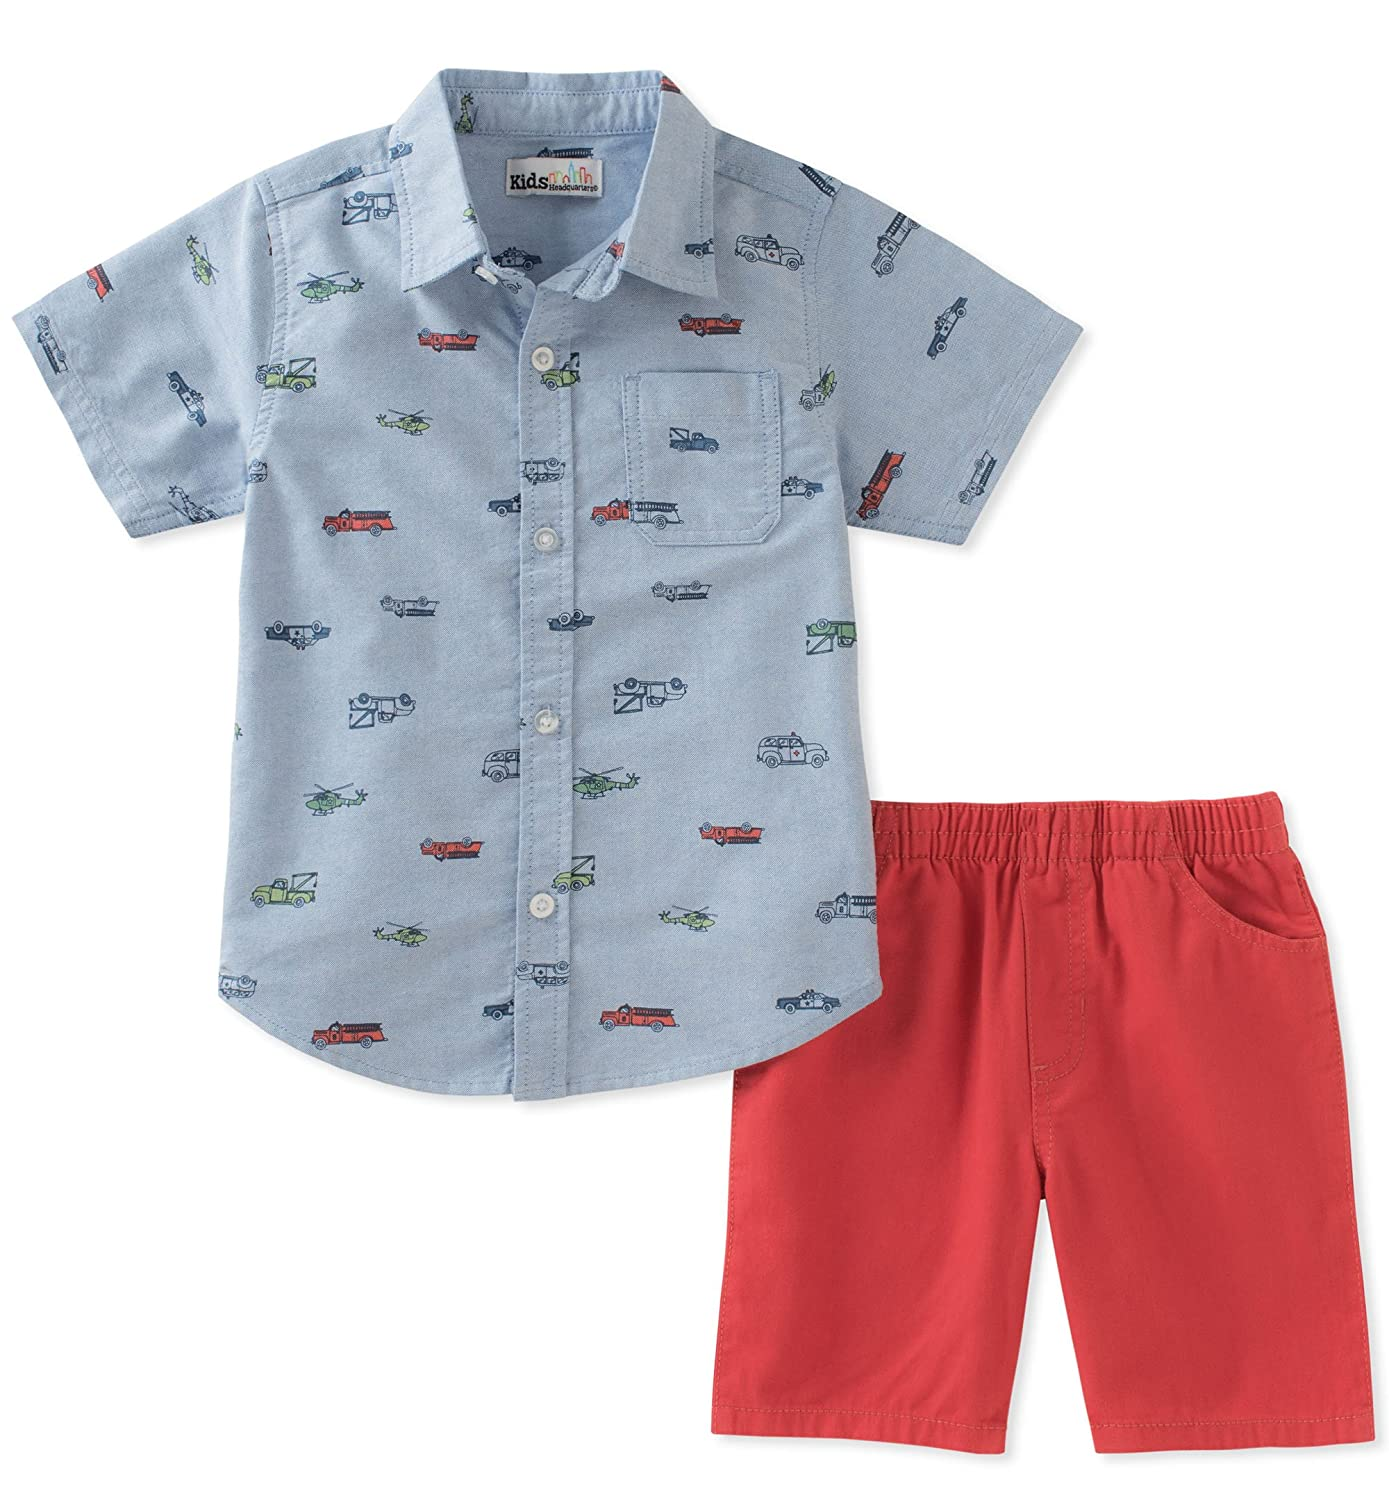 Kids Headquarters Boys' 2 Pieces Shirt Shorts Set P000512963